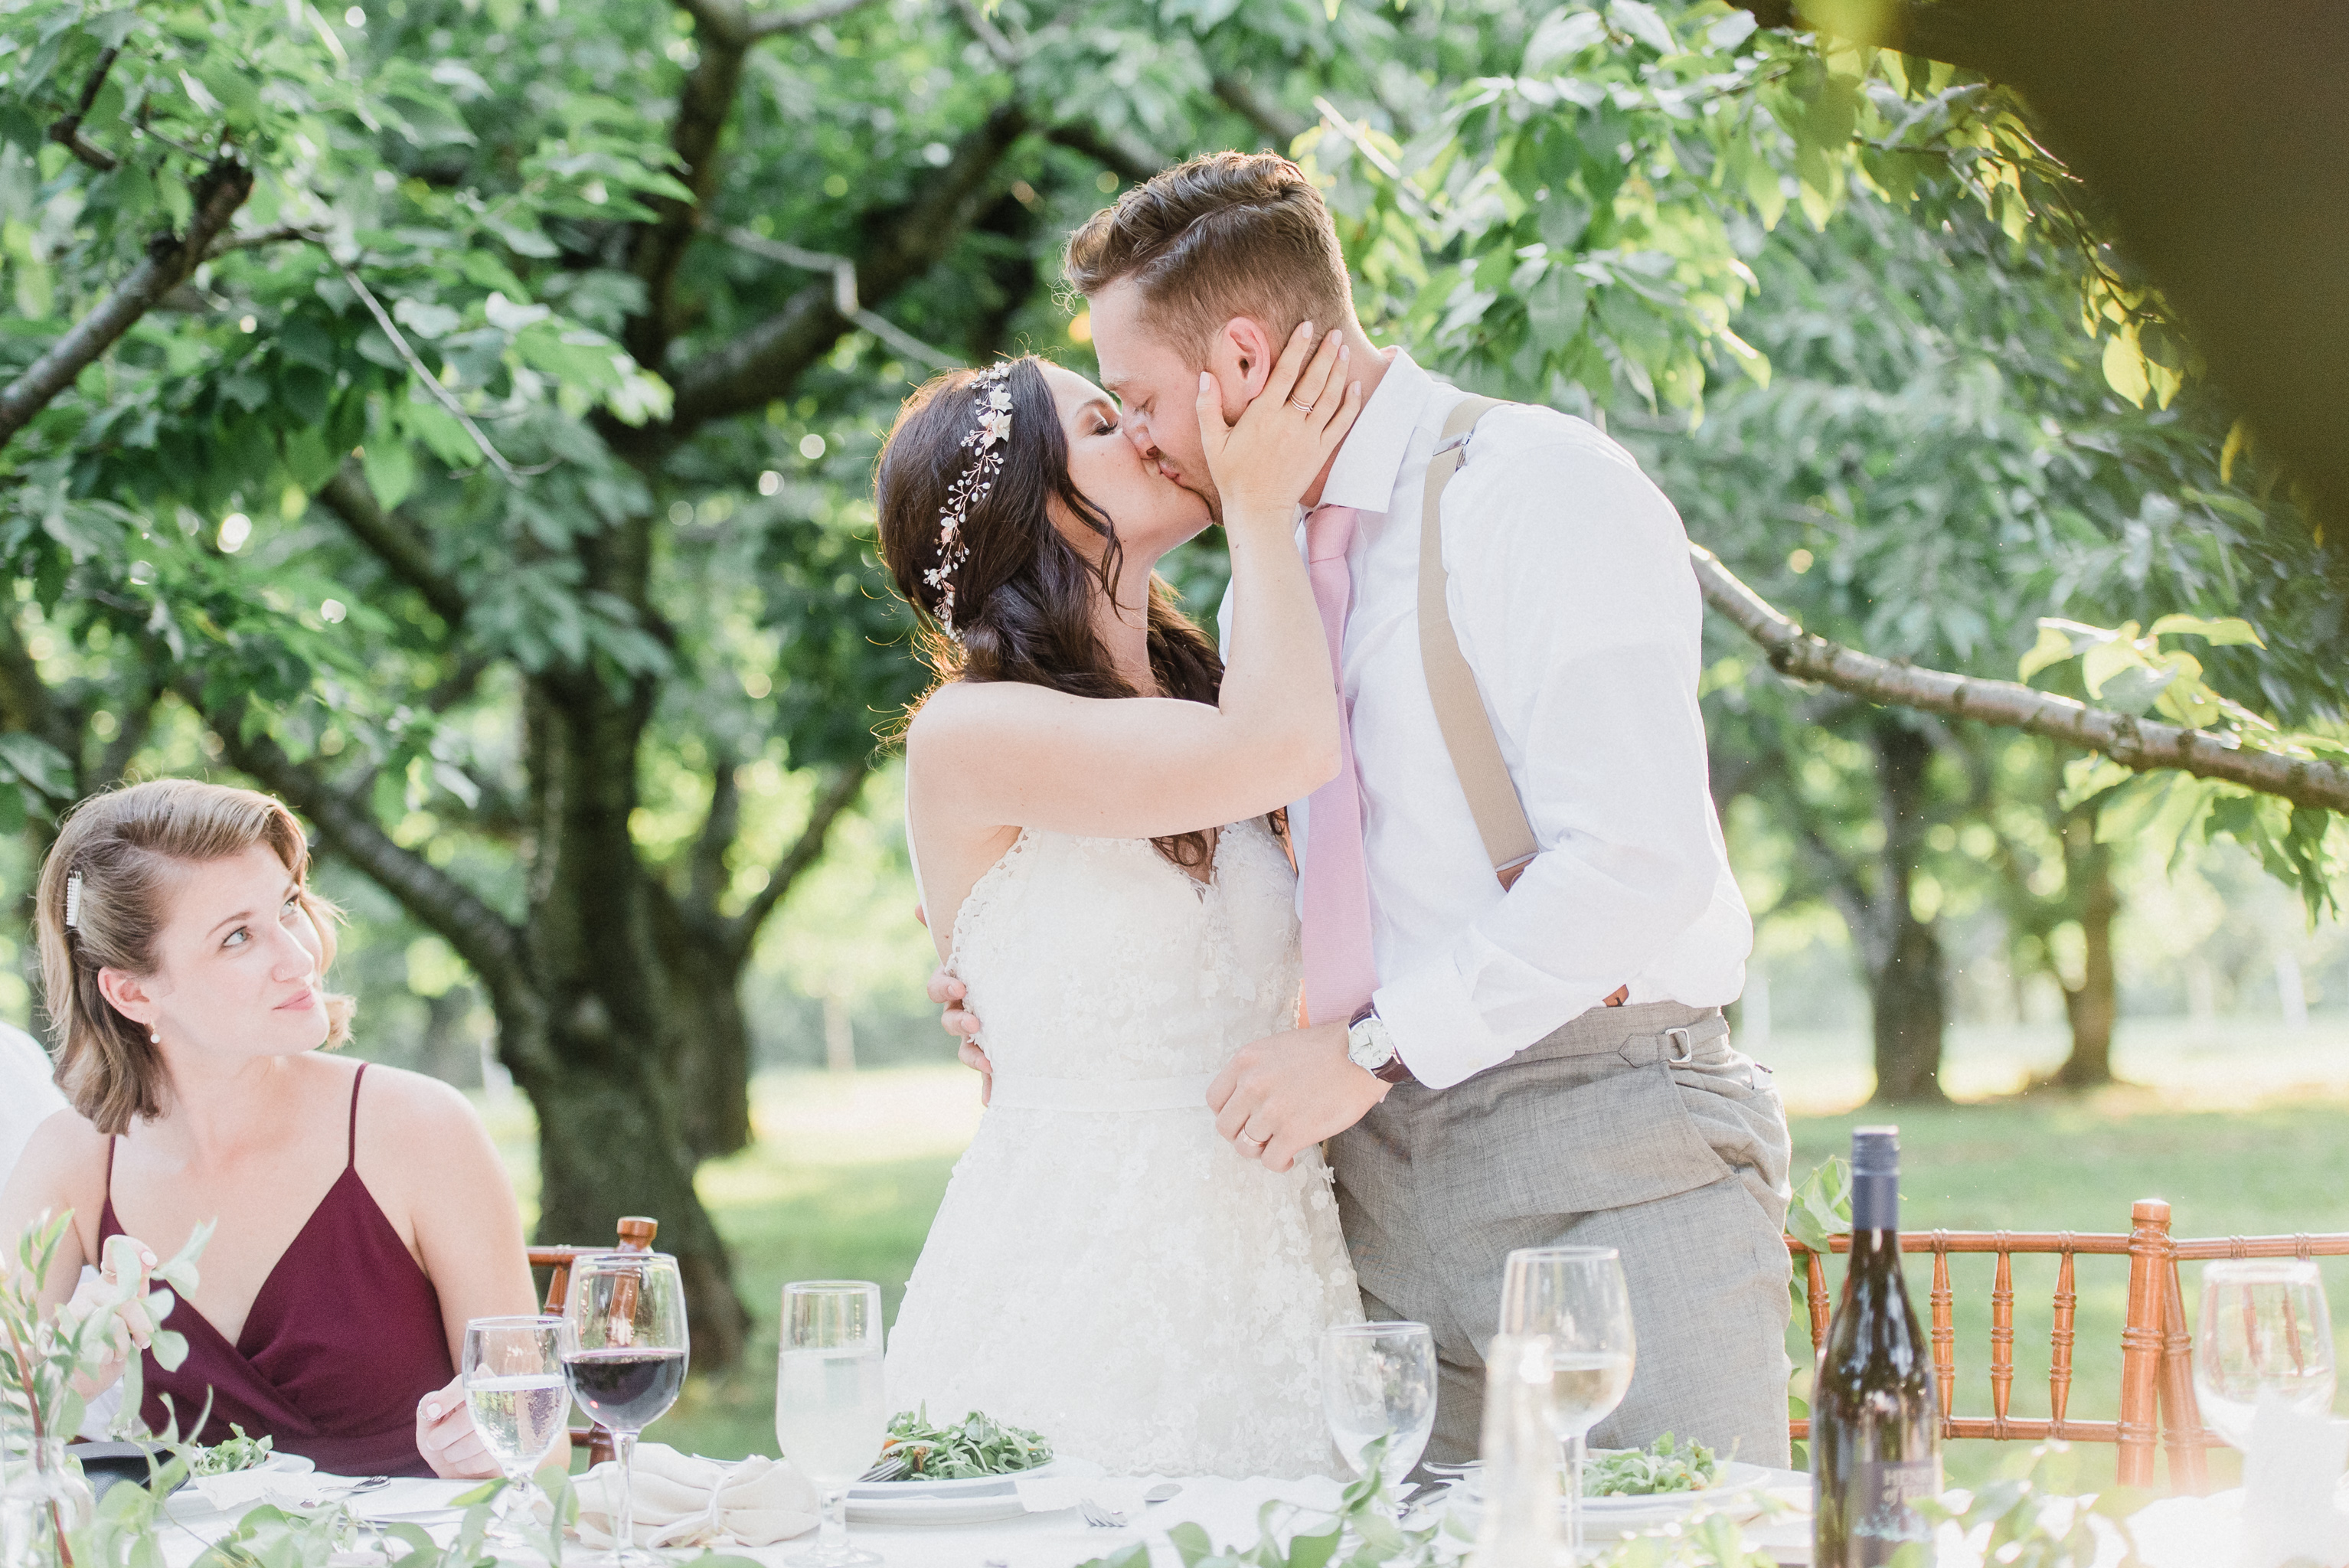 Summertime Wedding at Gracewood Estates by Jenn Kavanagh Photography